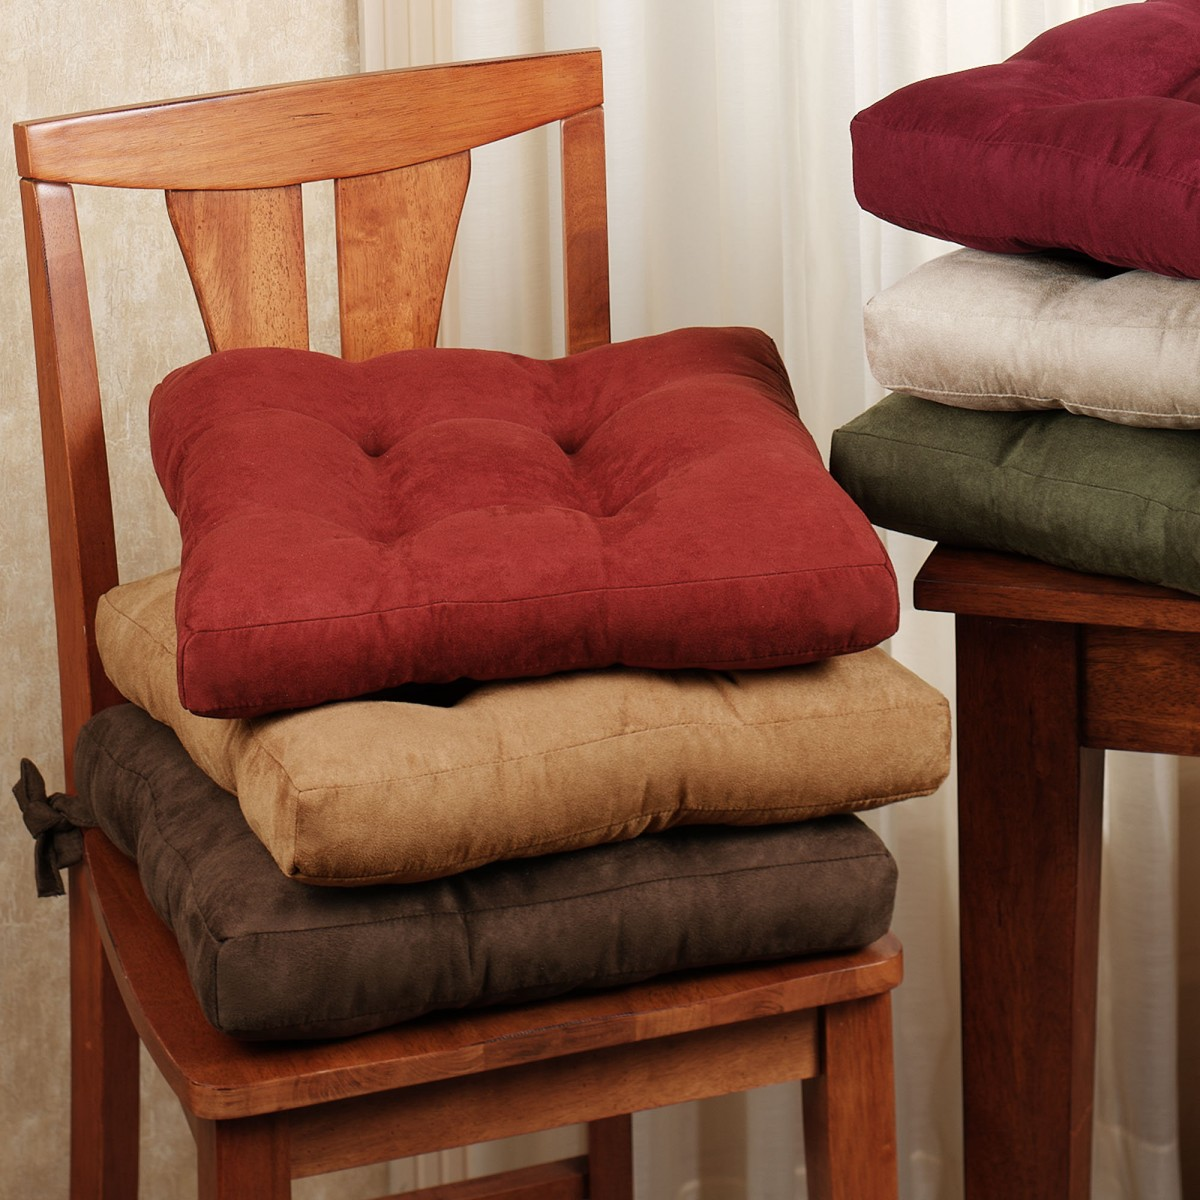 dining chair cushions with ties